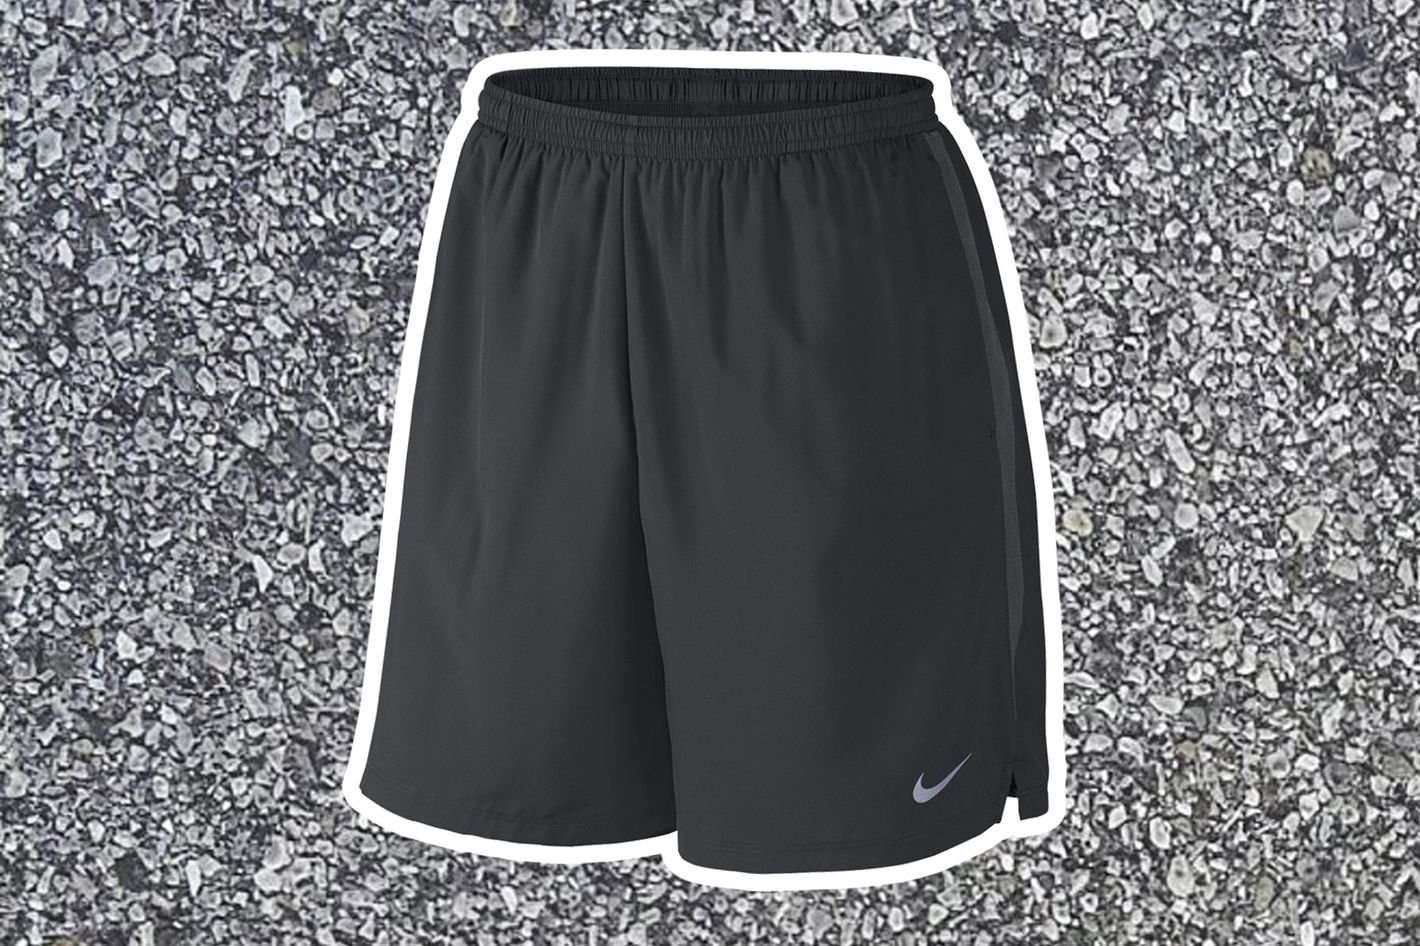 "nike 7"" challenger short in black - strategist best fitness gear and best affordable running shorts for men"